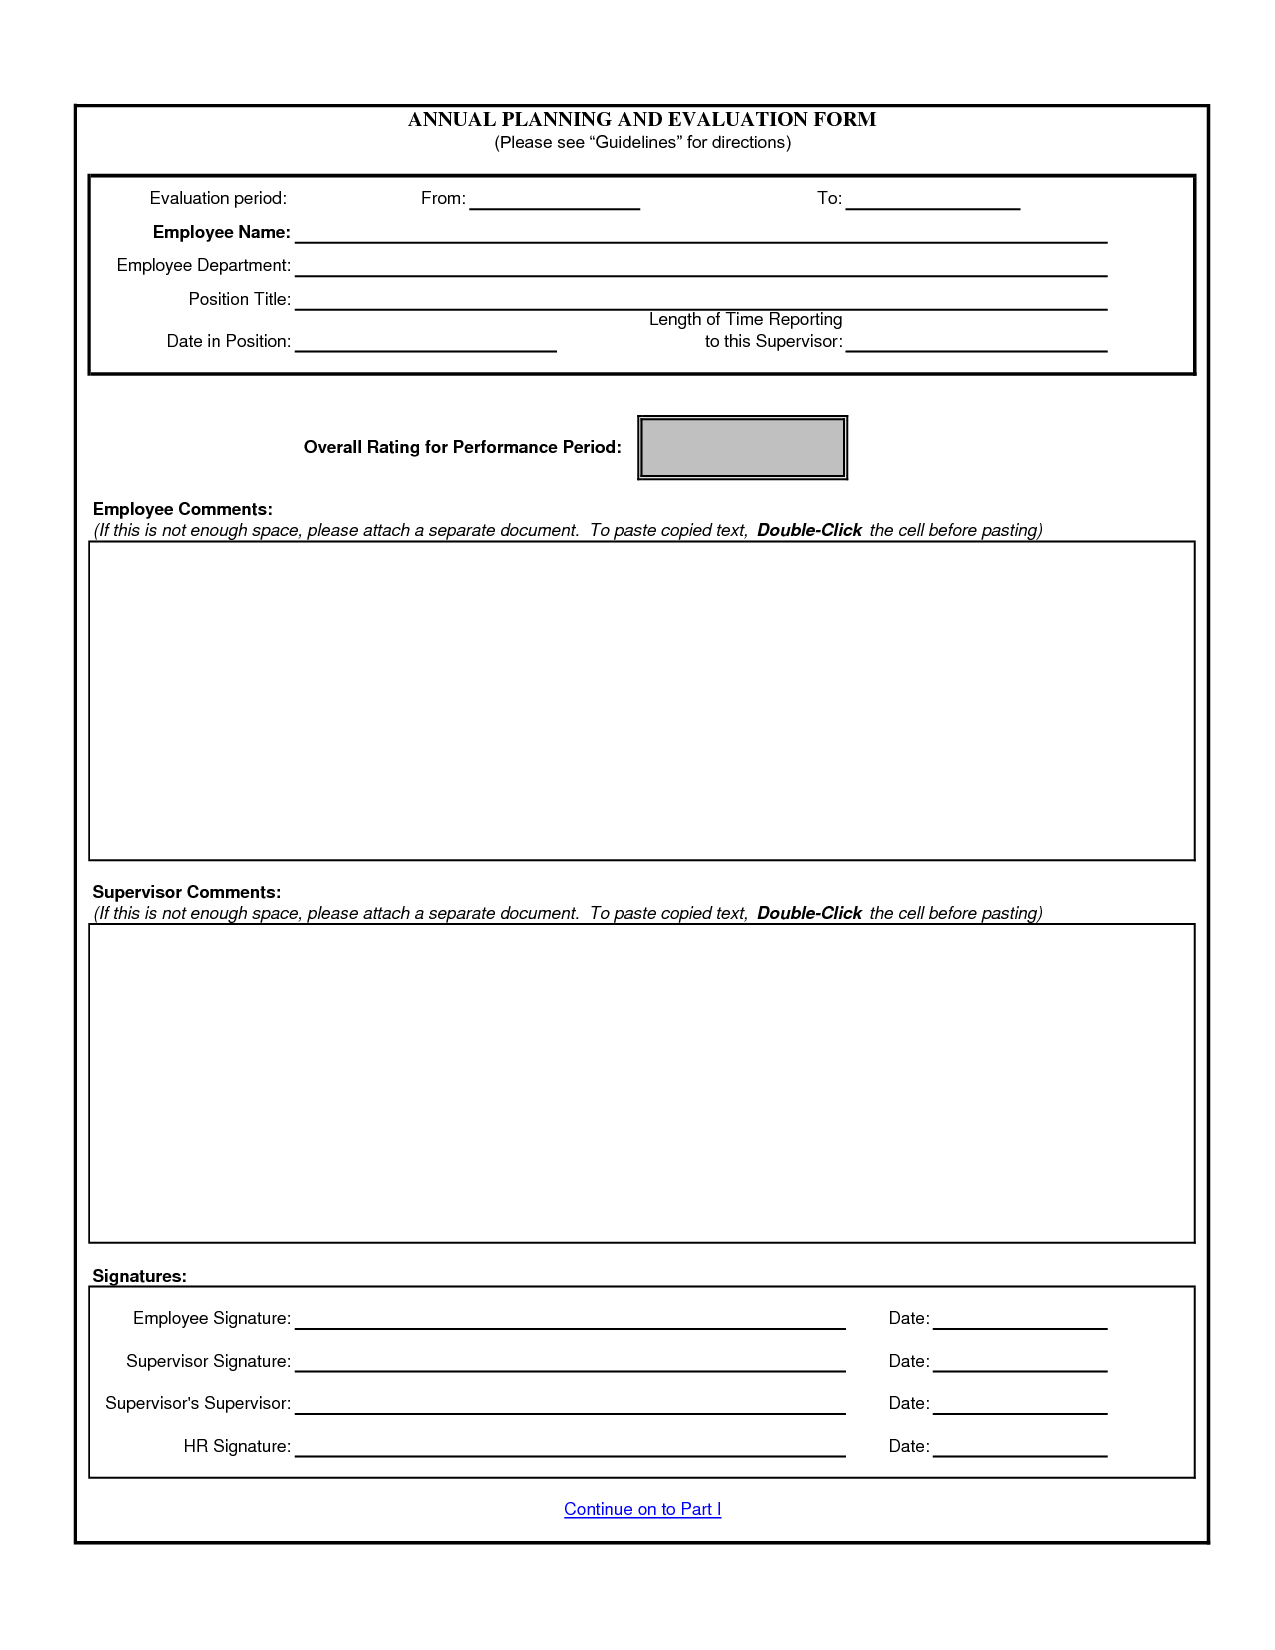 897806186-70537993 Examples Of Employee Coaching Forms on risk management form example, change management form example, project management form example, performance appraisal form example,